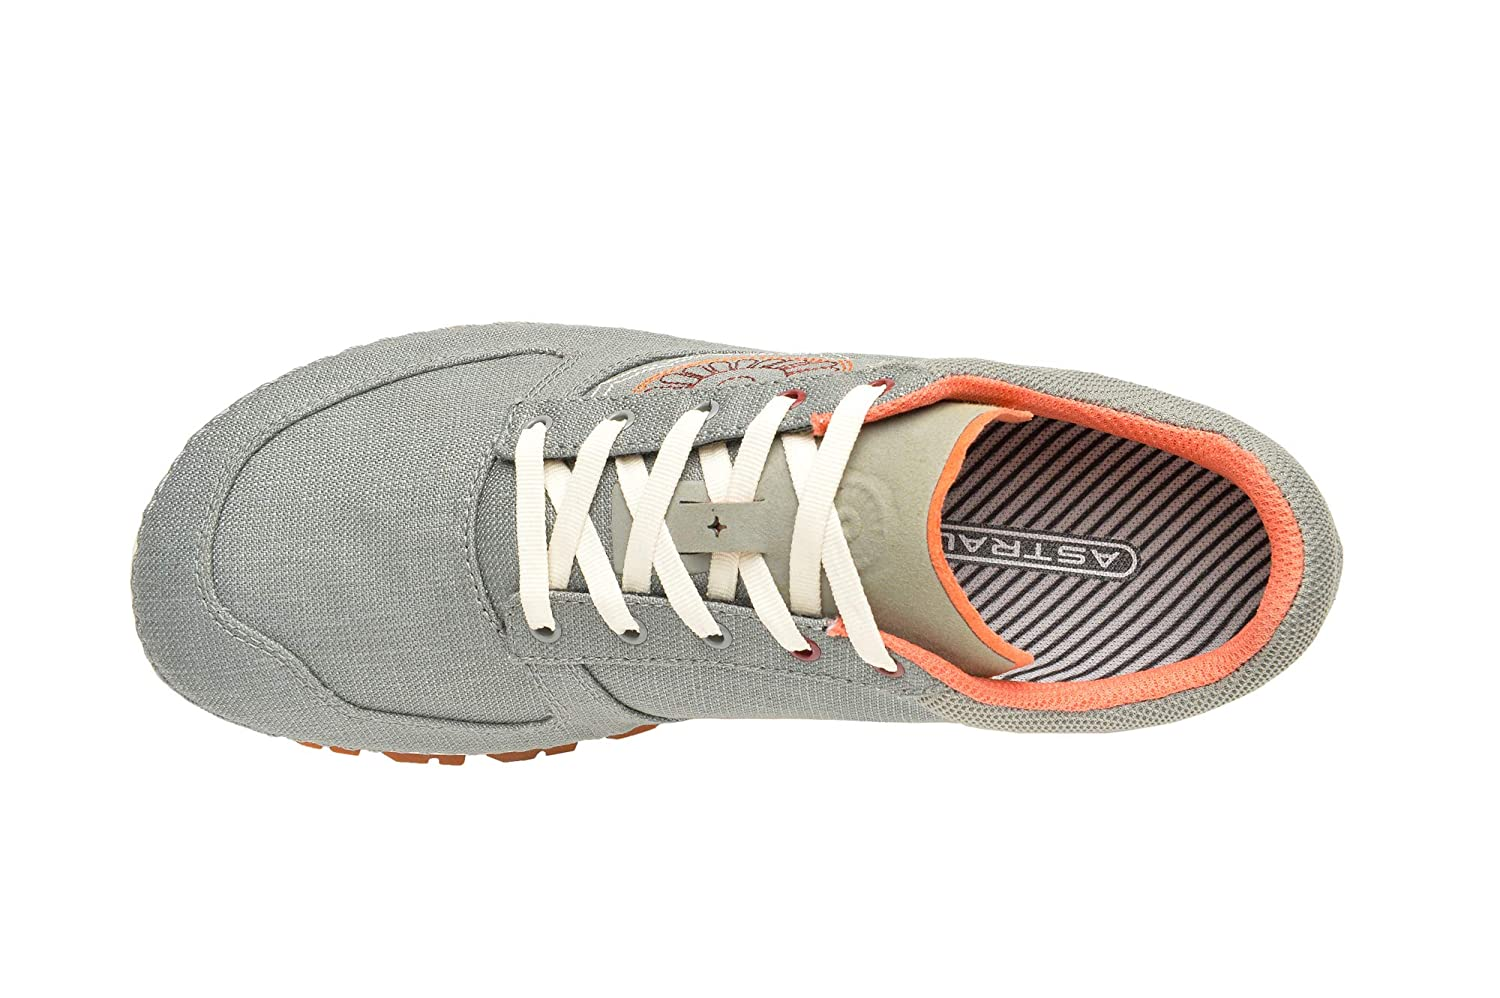 Gray//White 6 M US HTWGW06 Made for Outdoor Activities and Travel Breathable and Lightweight Astral Womens Hemp Tinker Casual Minimalist Shoes